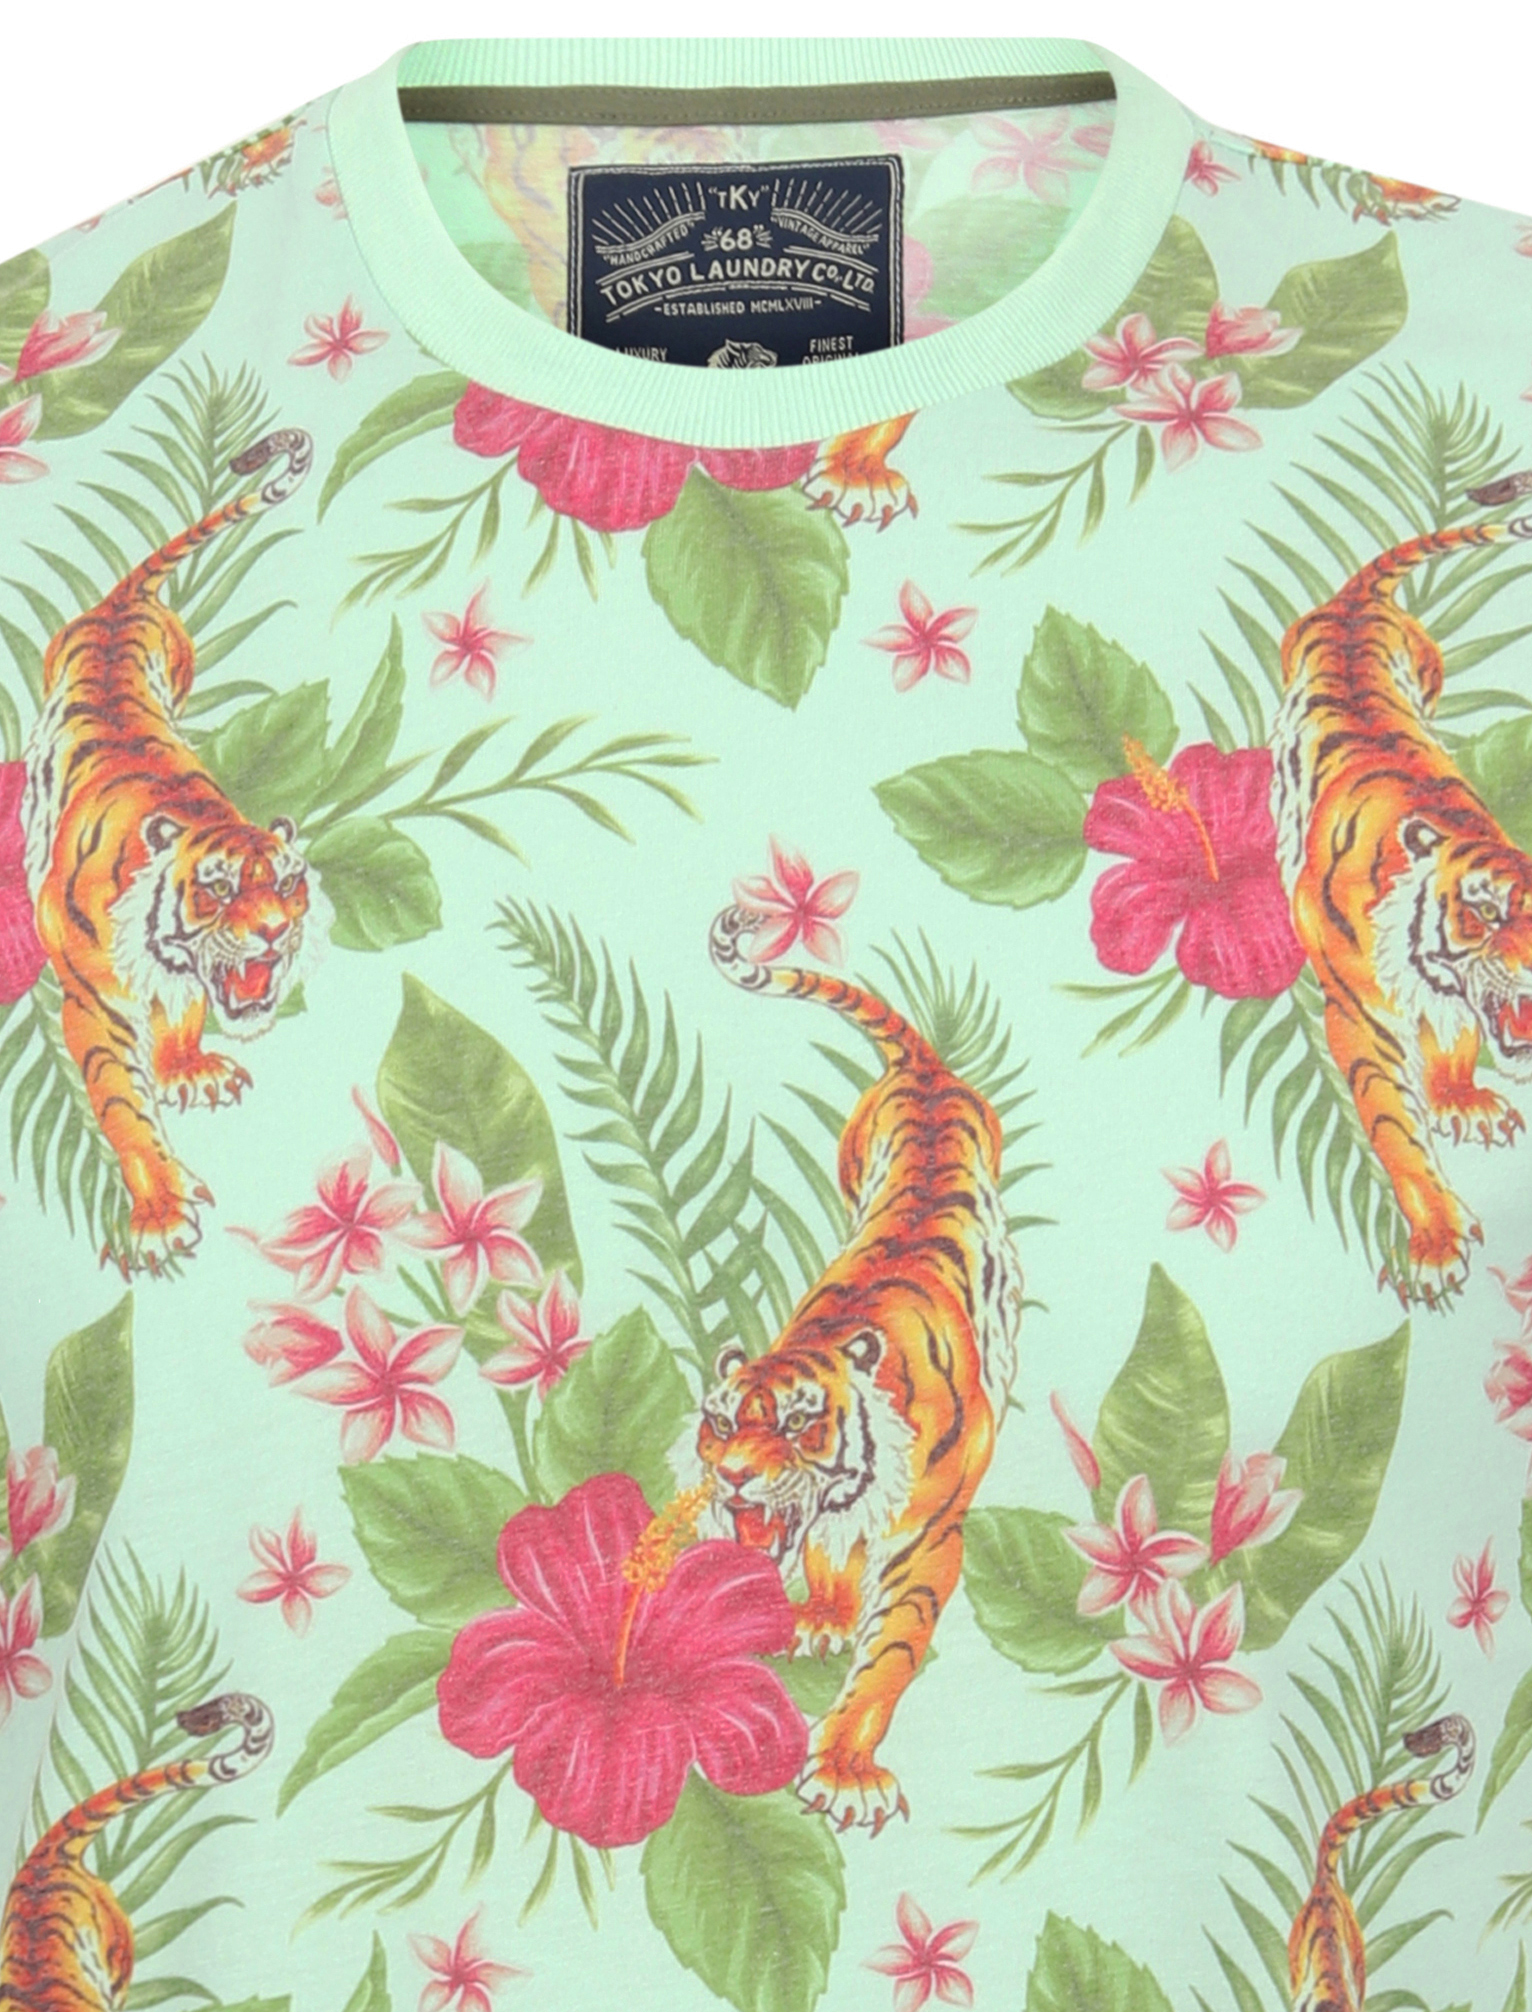 Tokyo-Laundry-Tropical-Print-Crew-Neck-T-Shirt-Hawaiian-Floral-Summer-Holiday thumbnail 22